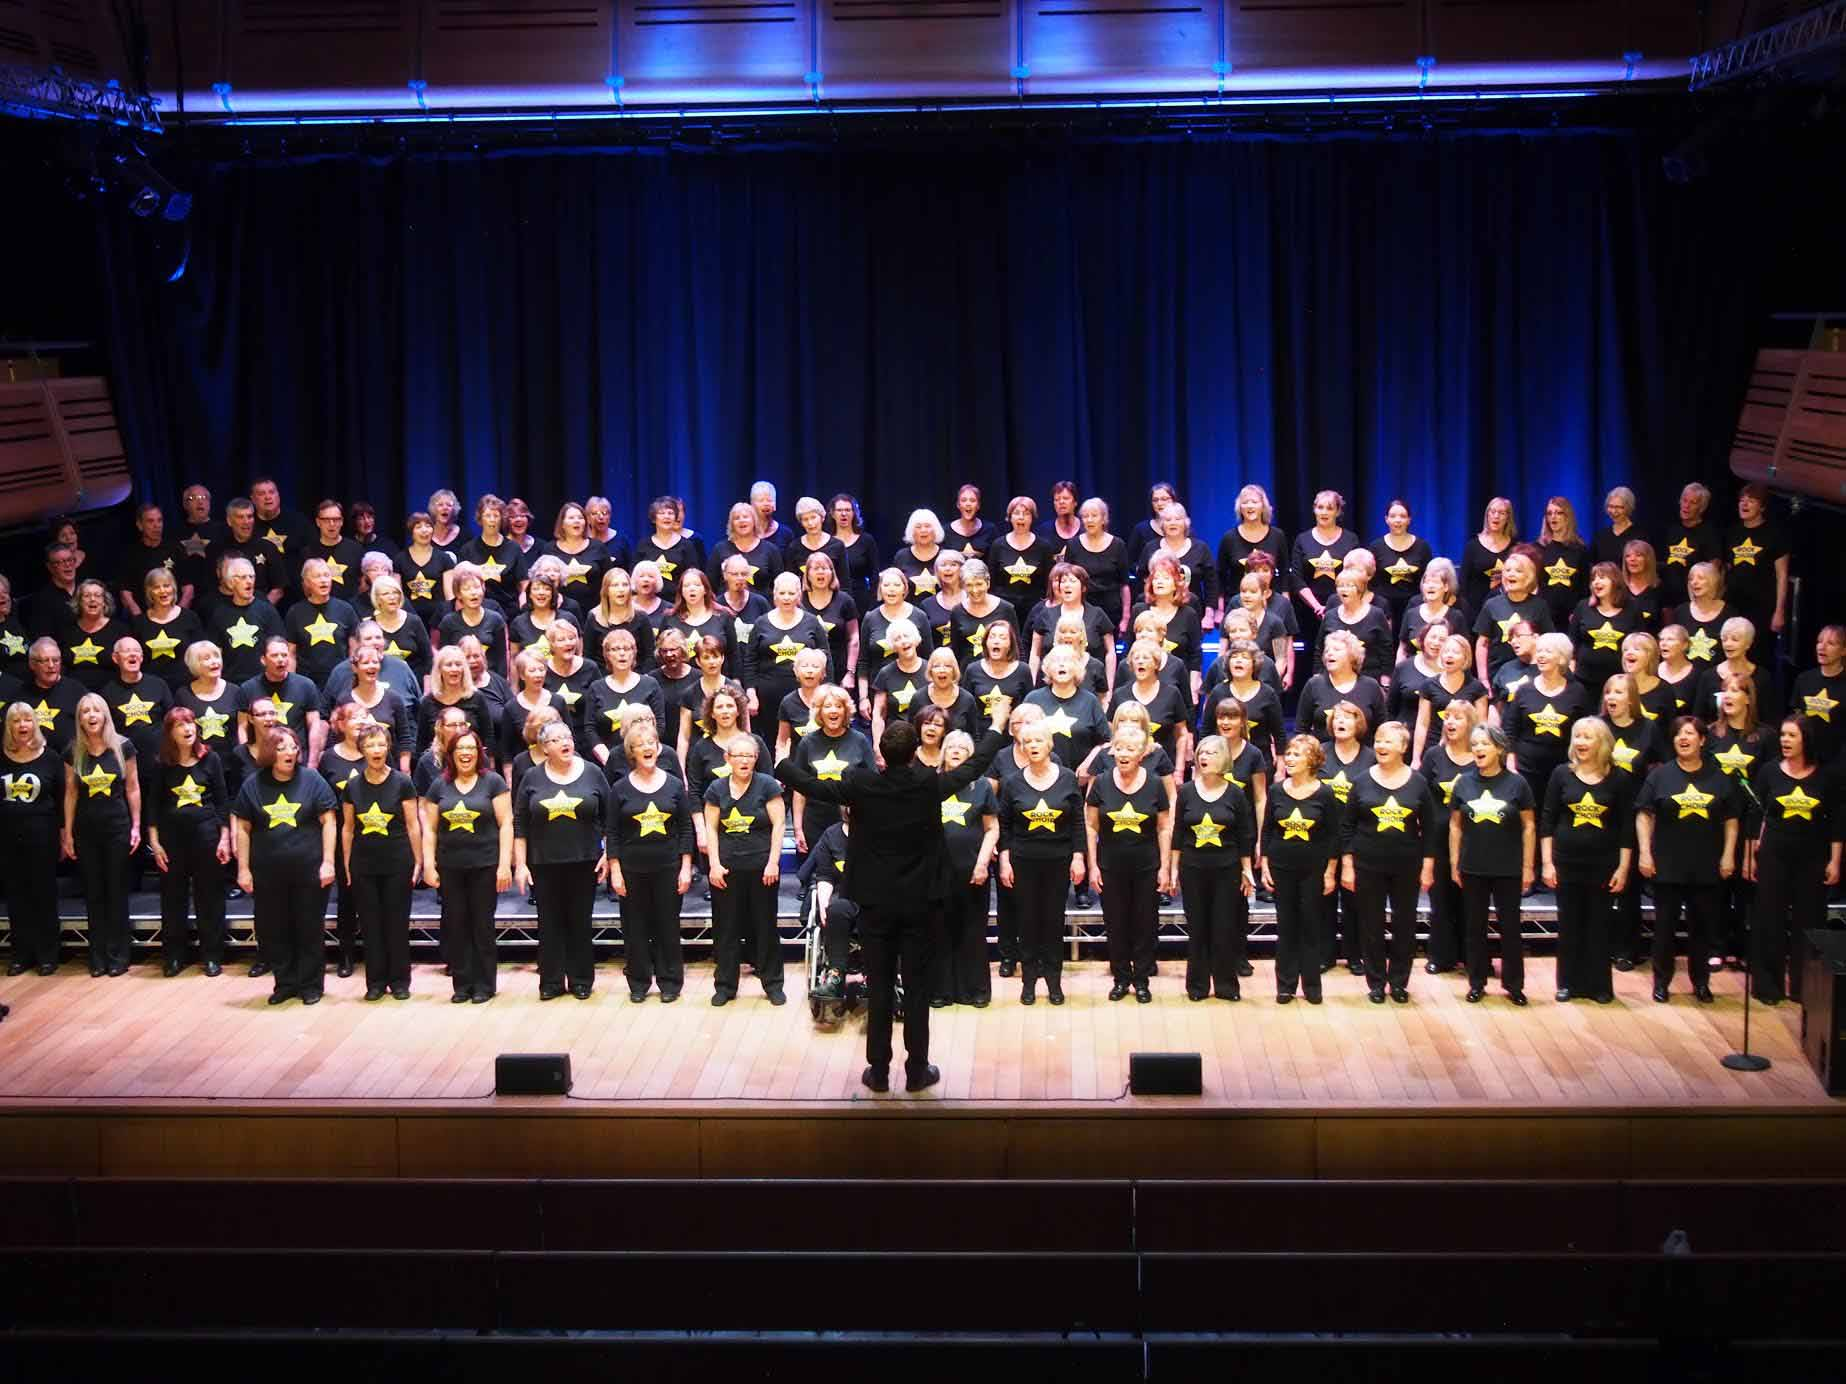 Saffron Walden Rock Choir